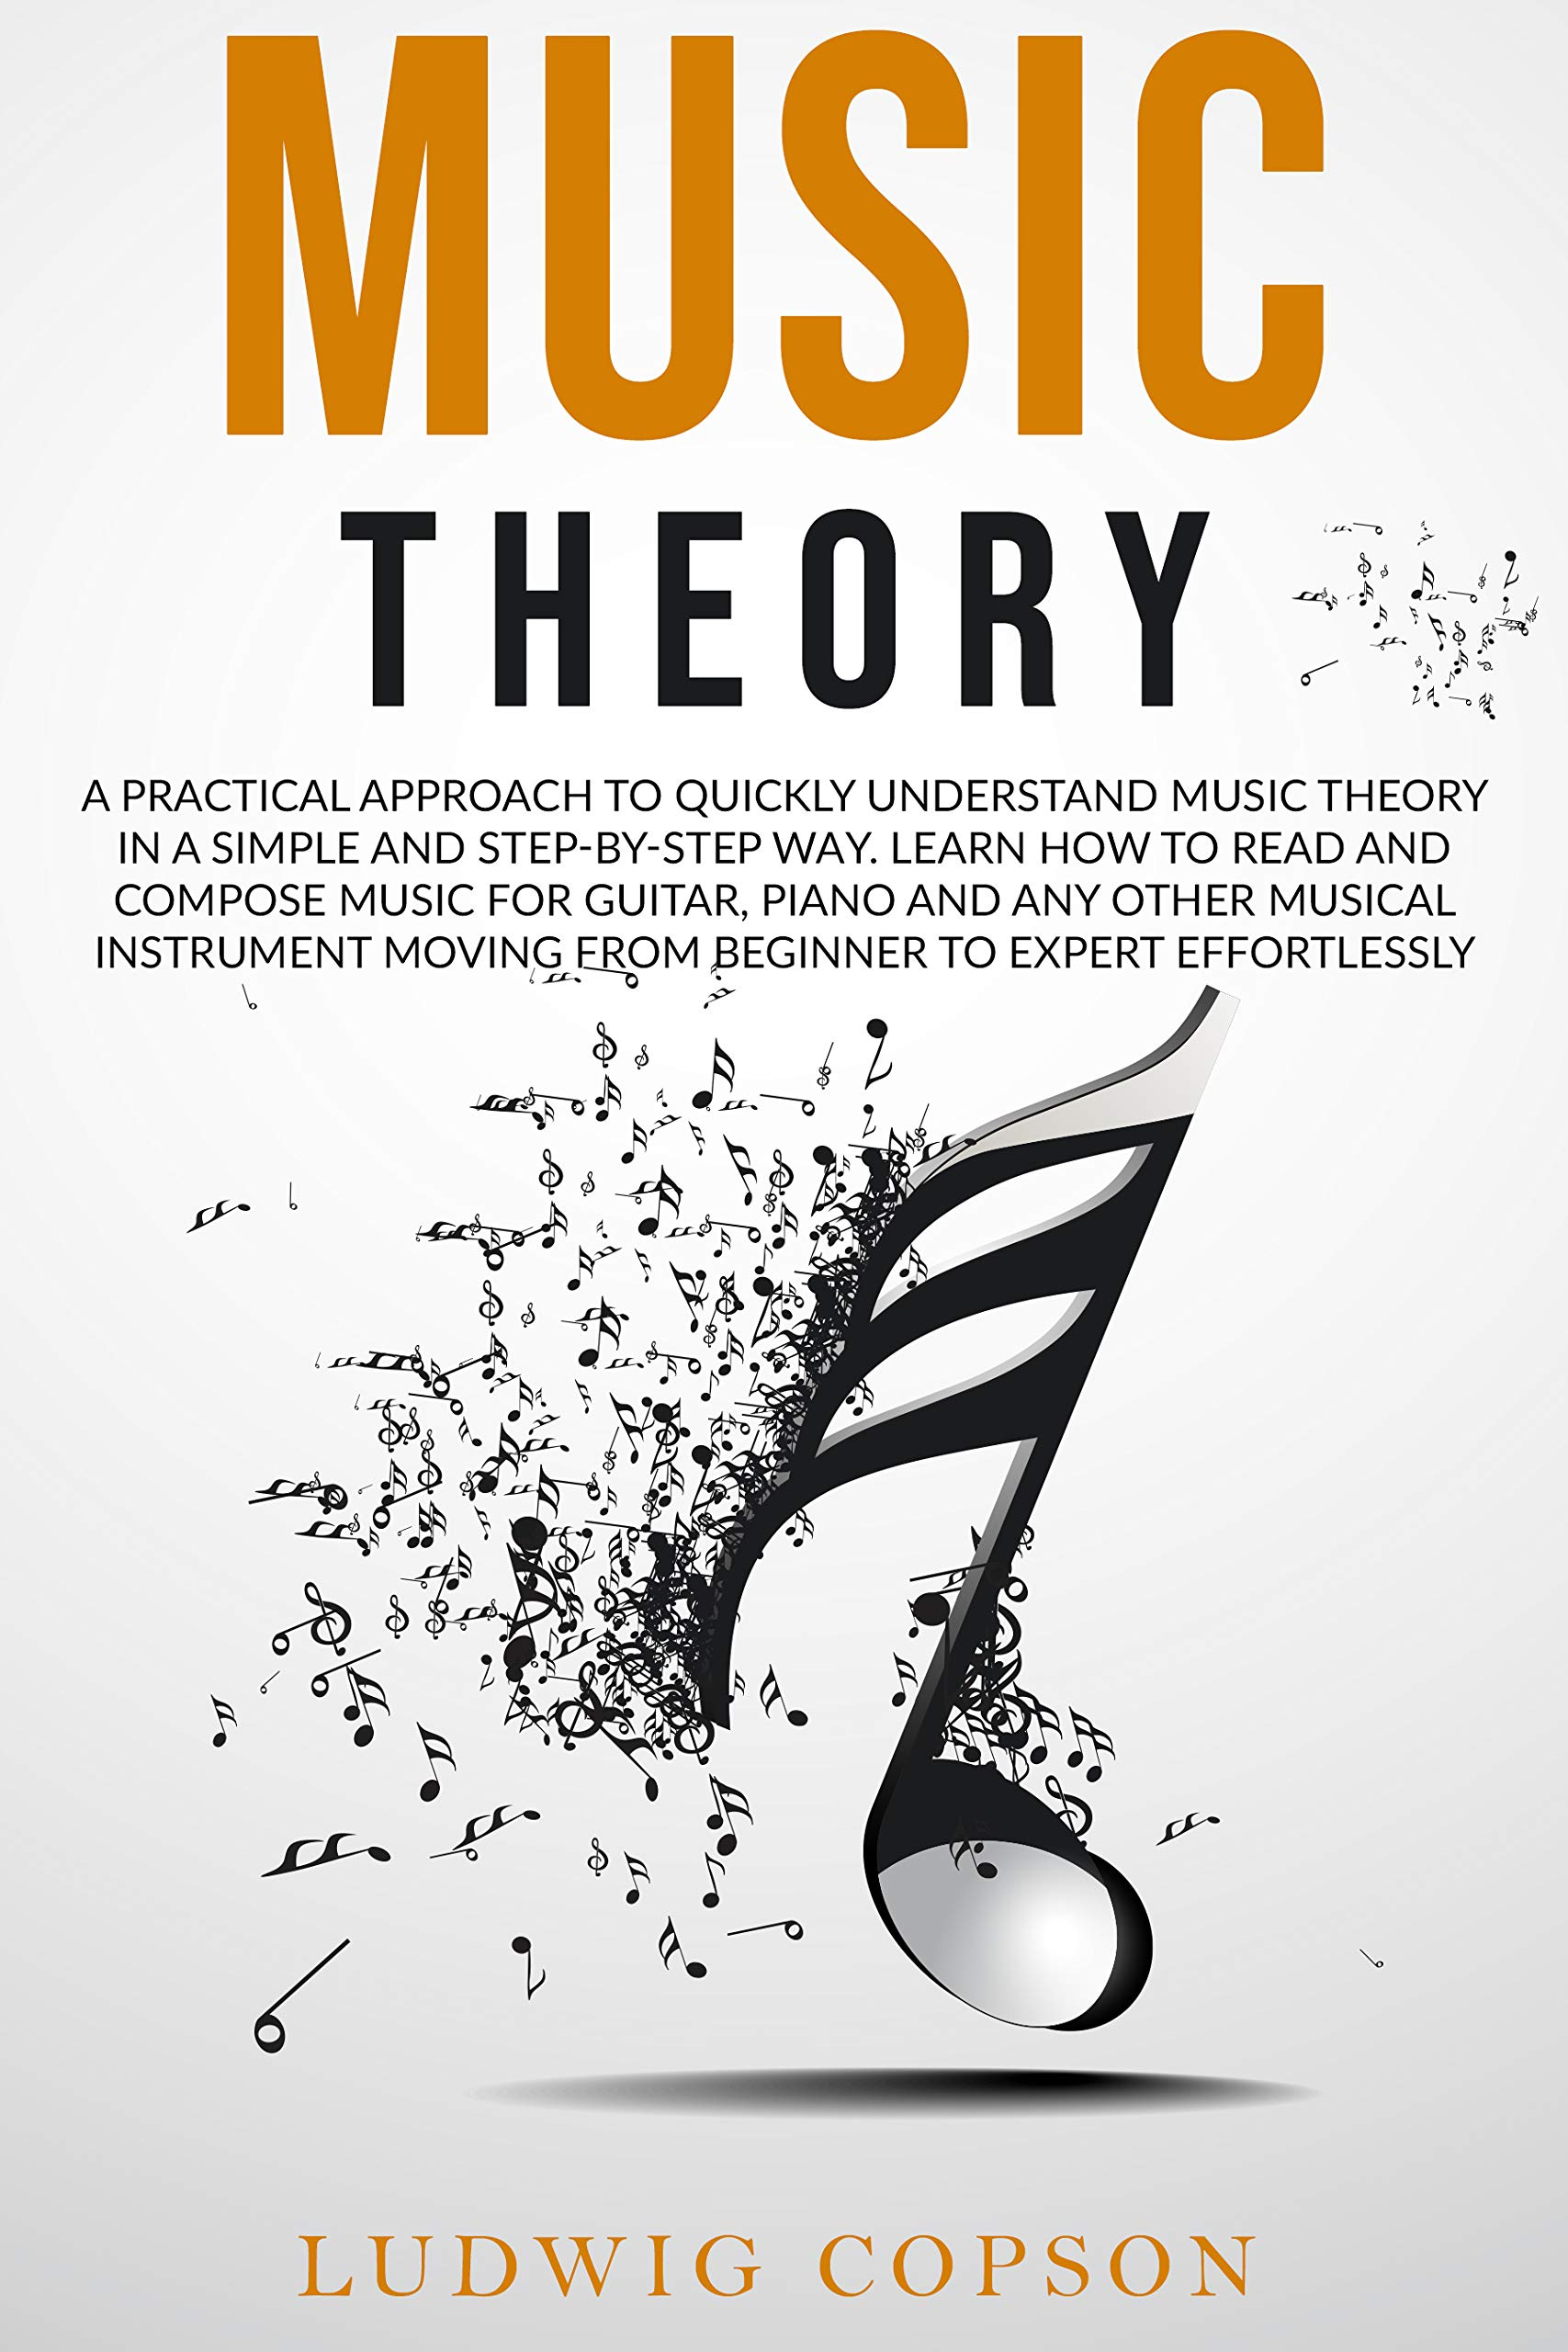 Music Theory: A Practical Approach to Quickly Understand the Theory in a Step-By-Step Way. Learn How to Read And Compose Melody For Any Musical Instrument Moving From Beginner to Expert Effortlessly